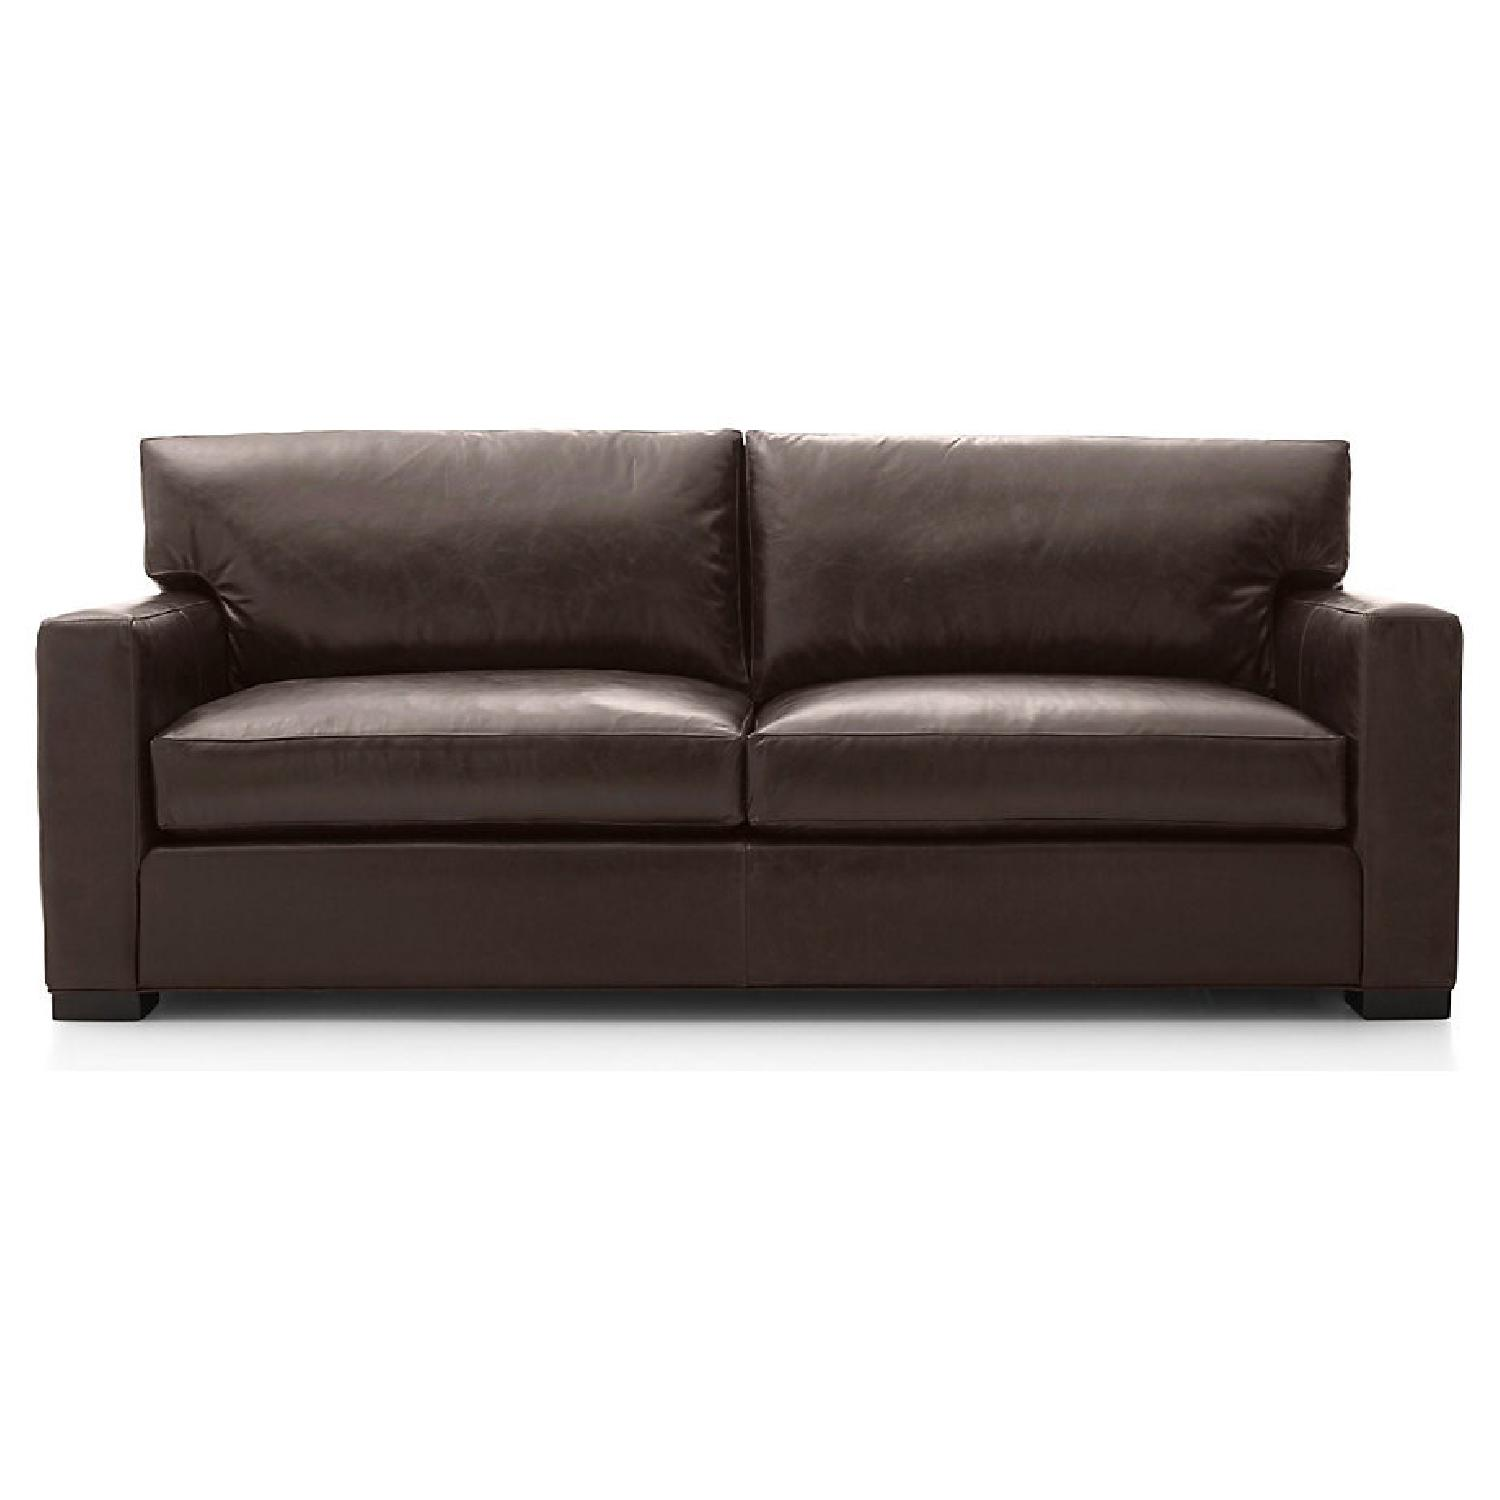 Crate and Barrel Axis Leather 2-Seat Sofa - image-5